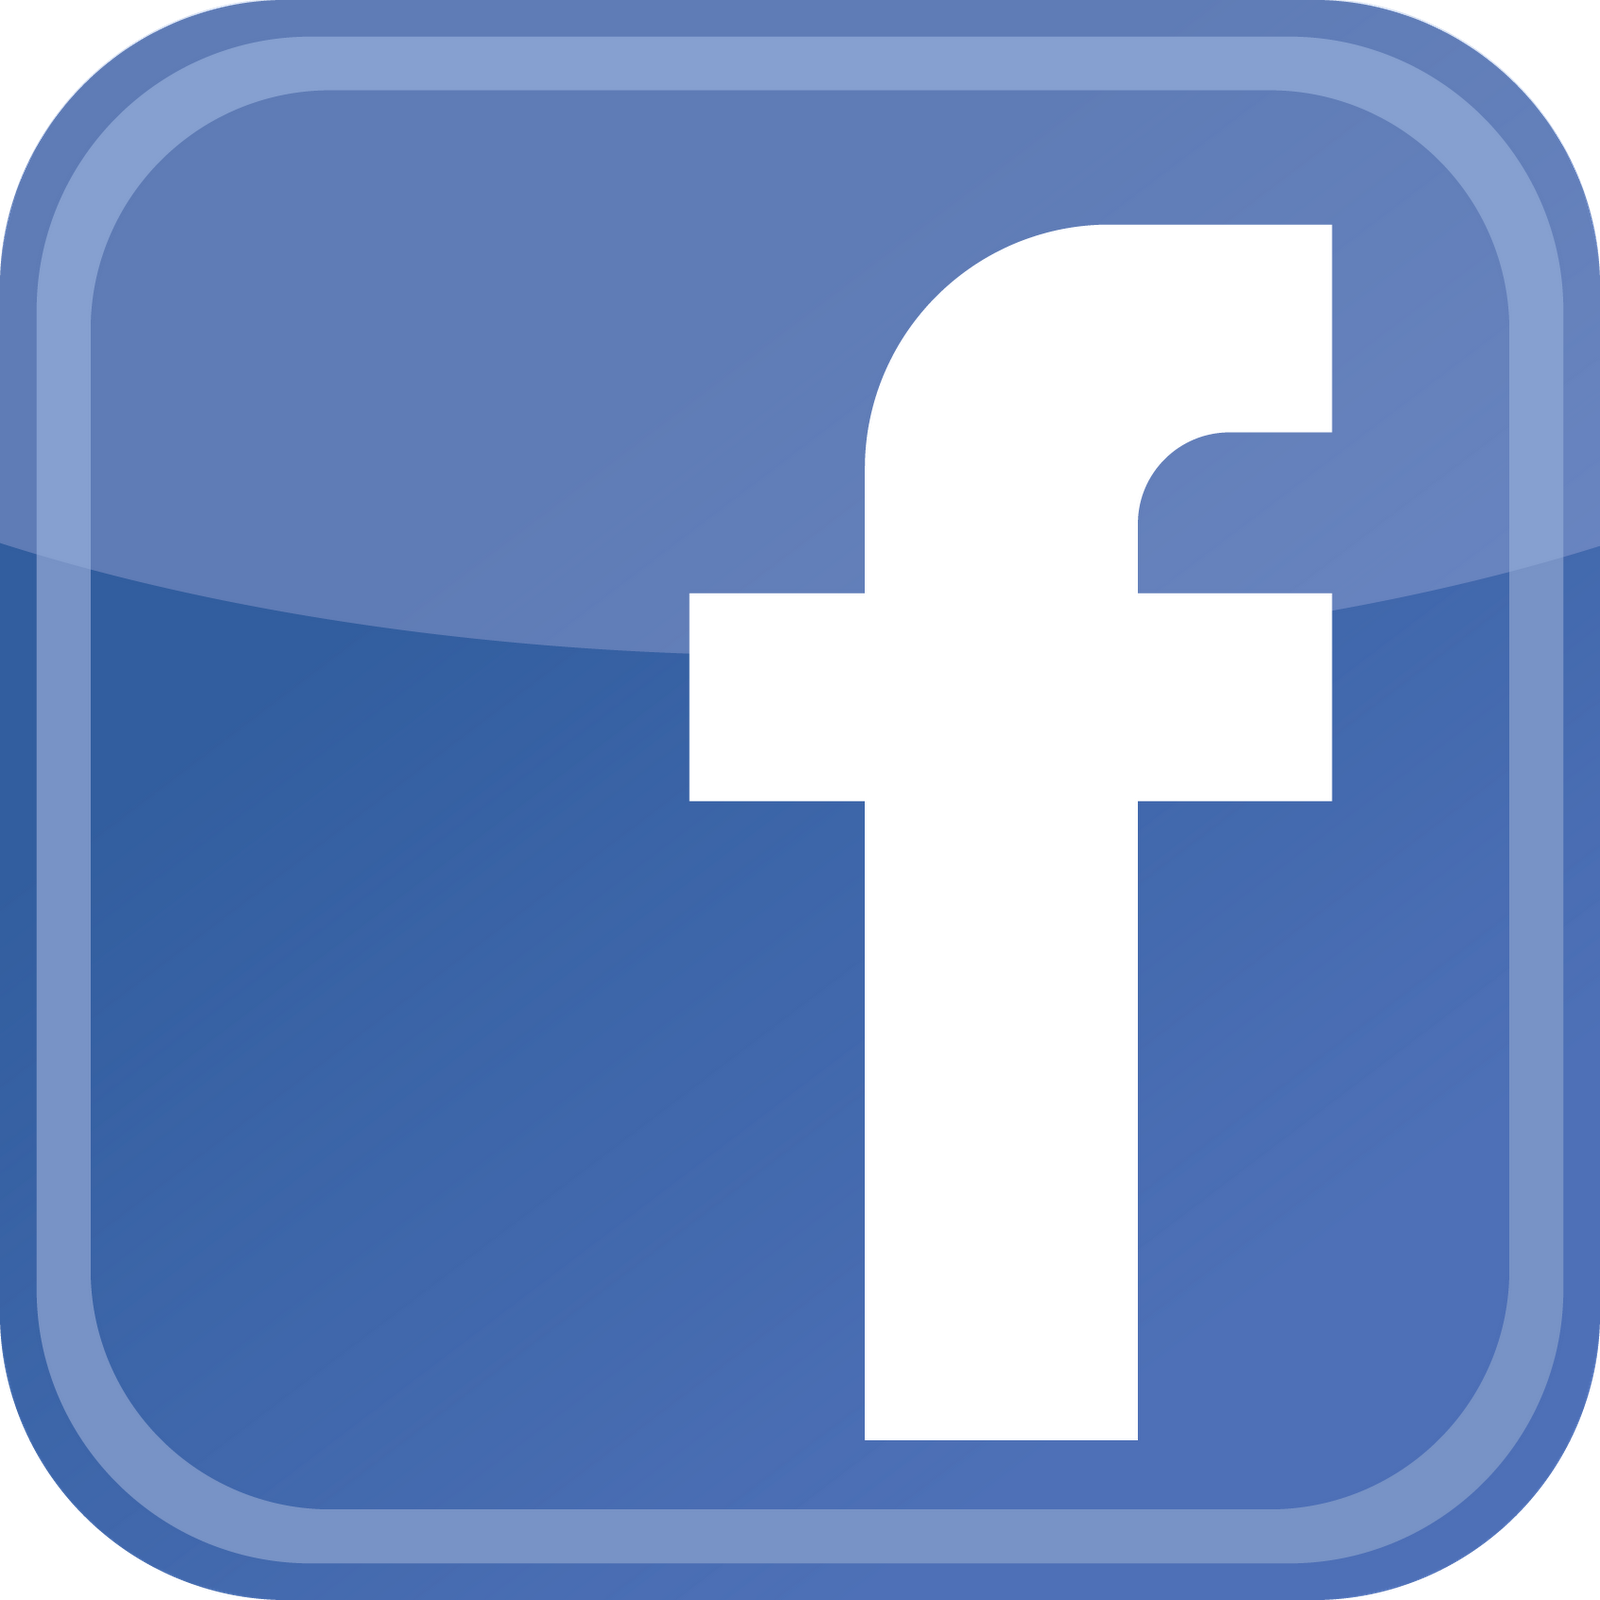 To stay up to date on events and Expedition, check out the TWSB Laurier Facebook Page!